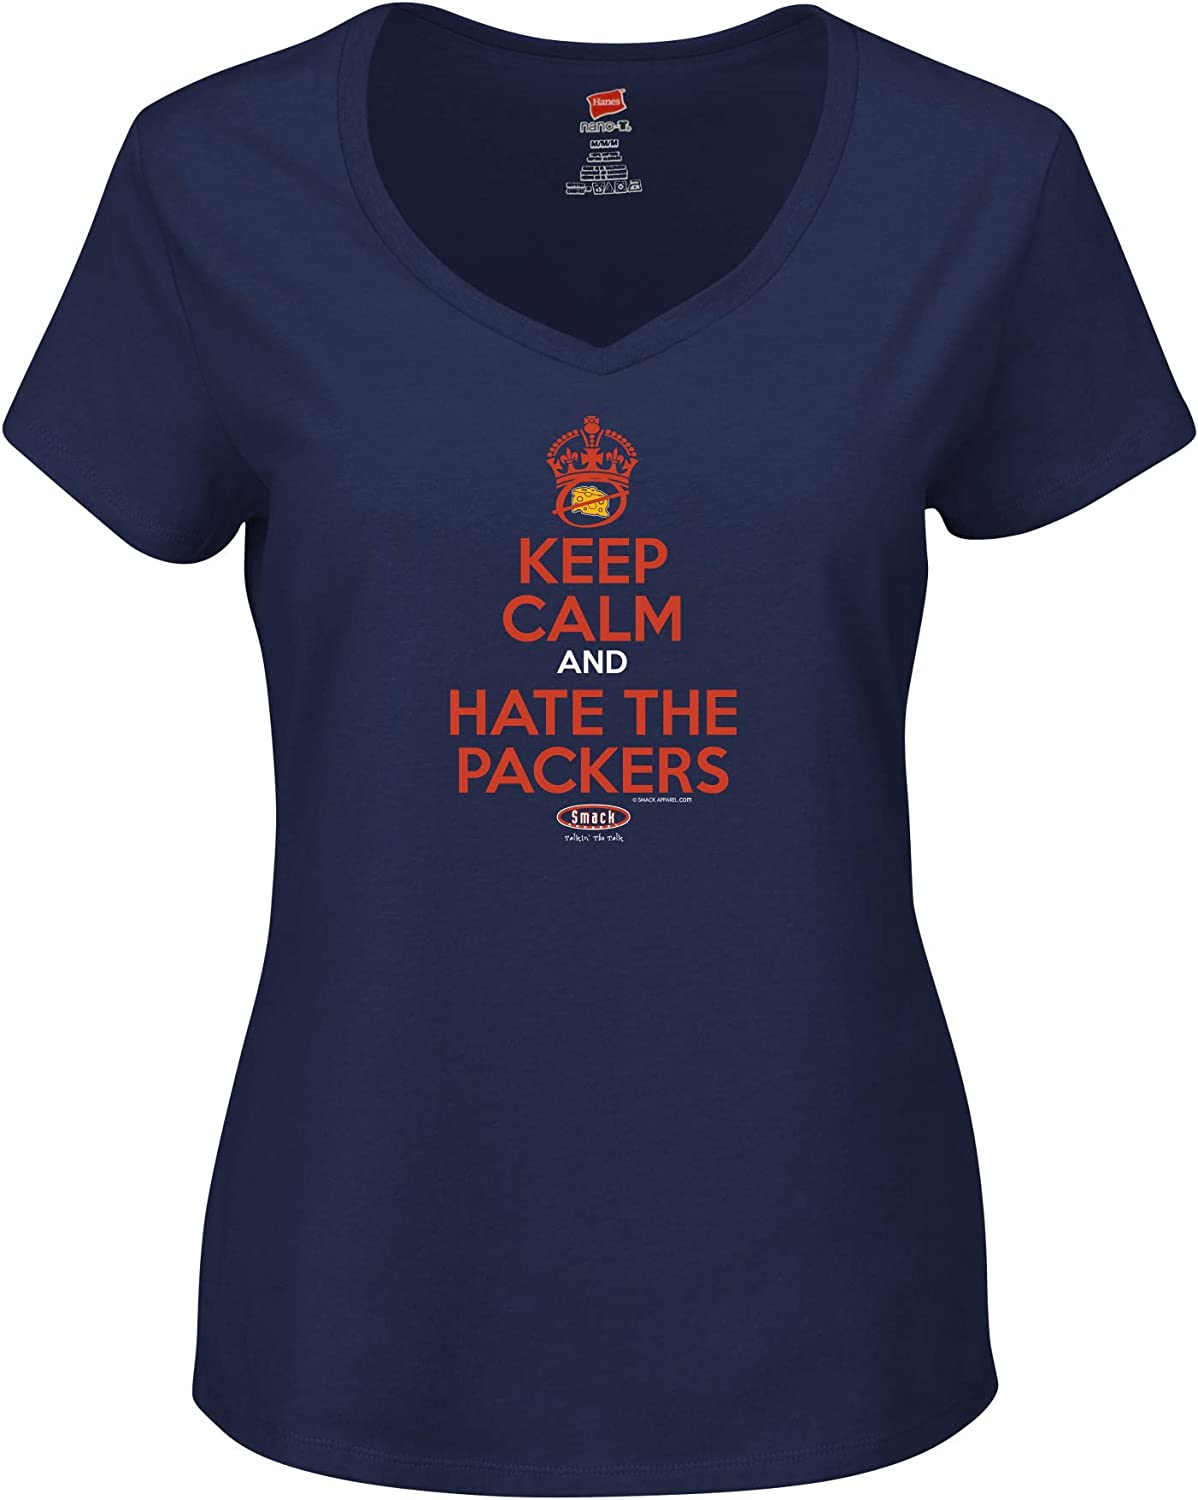 Smack Apparel Chicago Football Fans Navy Ladies T-Shirt Keep Calm and Hate The Packers Xs-2X